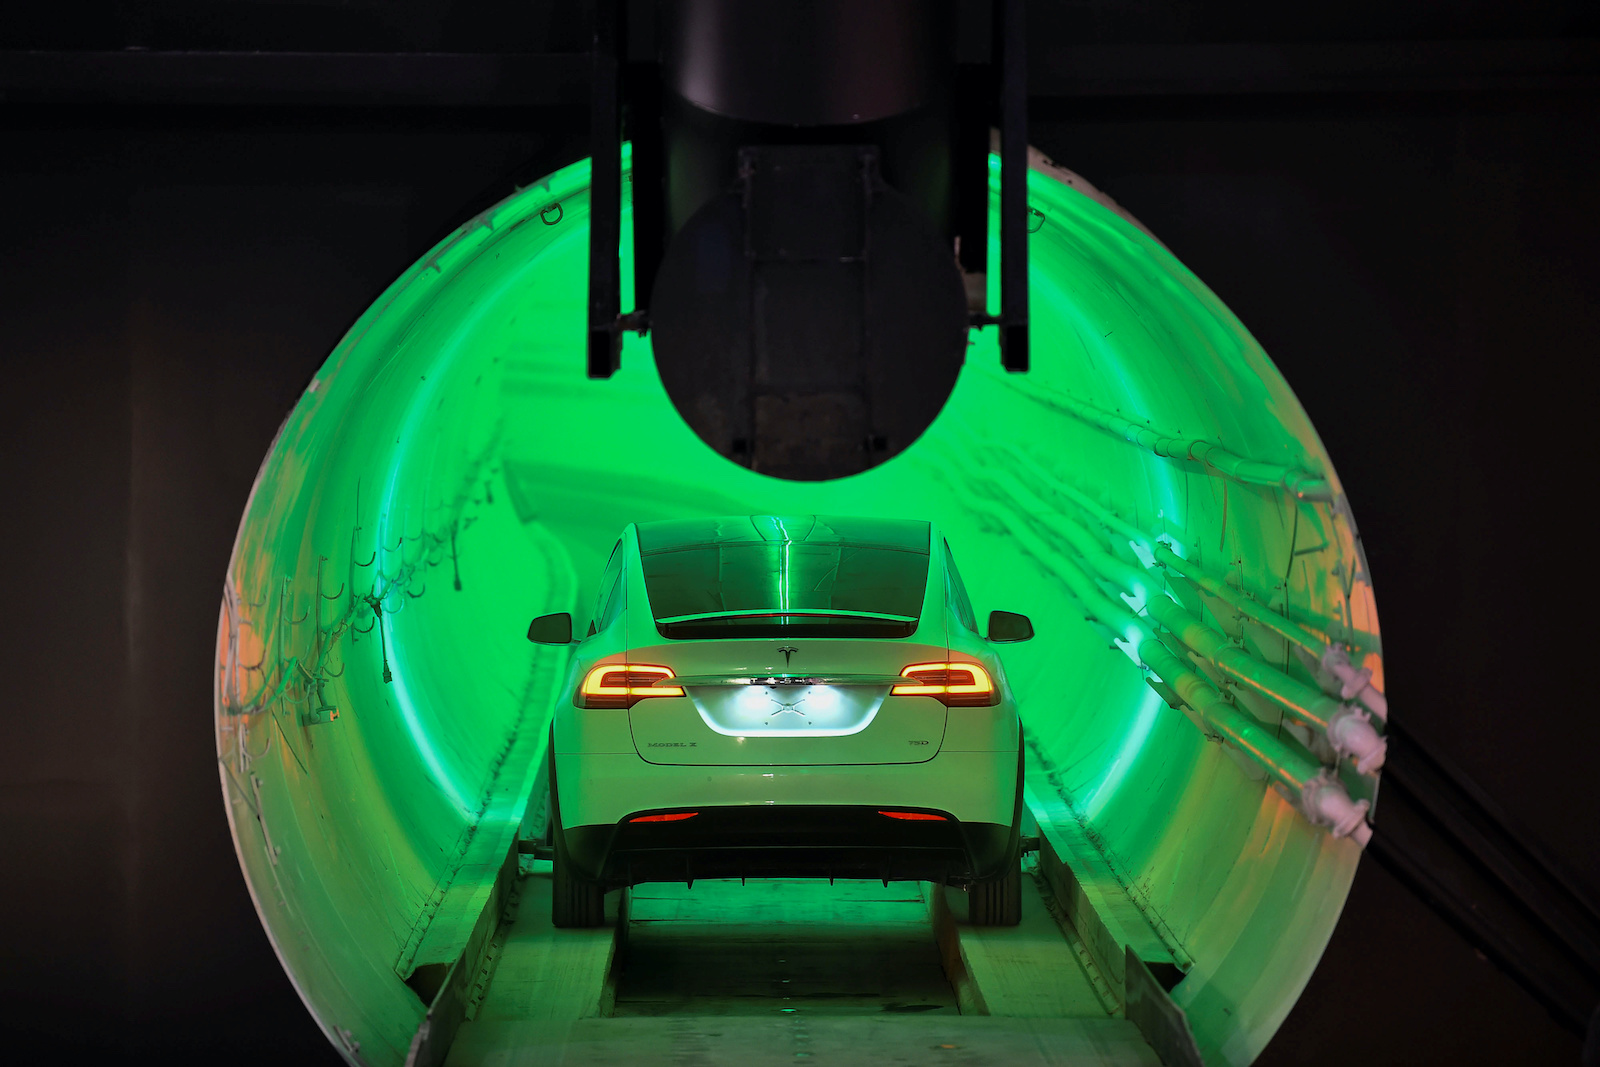 A modified Tesla Model X electric vehicle enters a tunnel during an unveiling event for the Boring Co. Hawthorne test tunnel in Hawthorne, California, U.S., December 18, 2018.        Robyn Beck/Pool via REUTERS - RC16C23C58F0